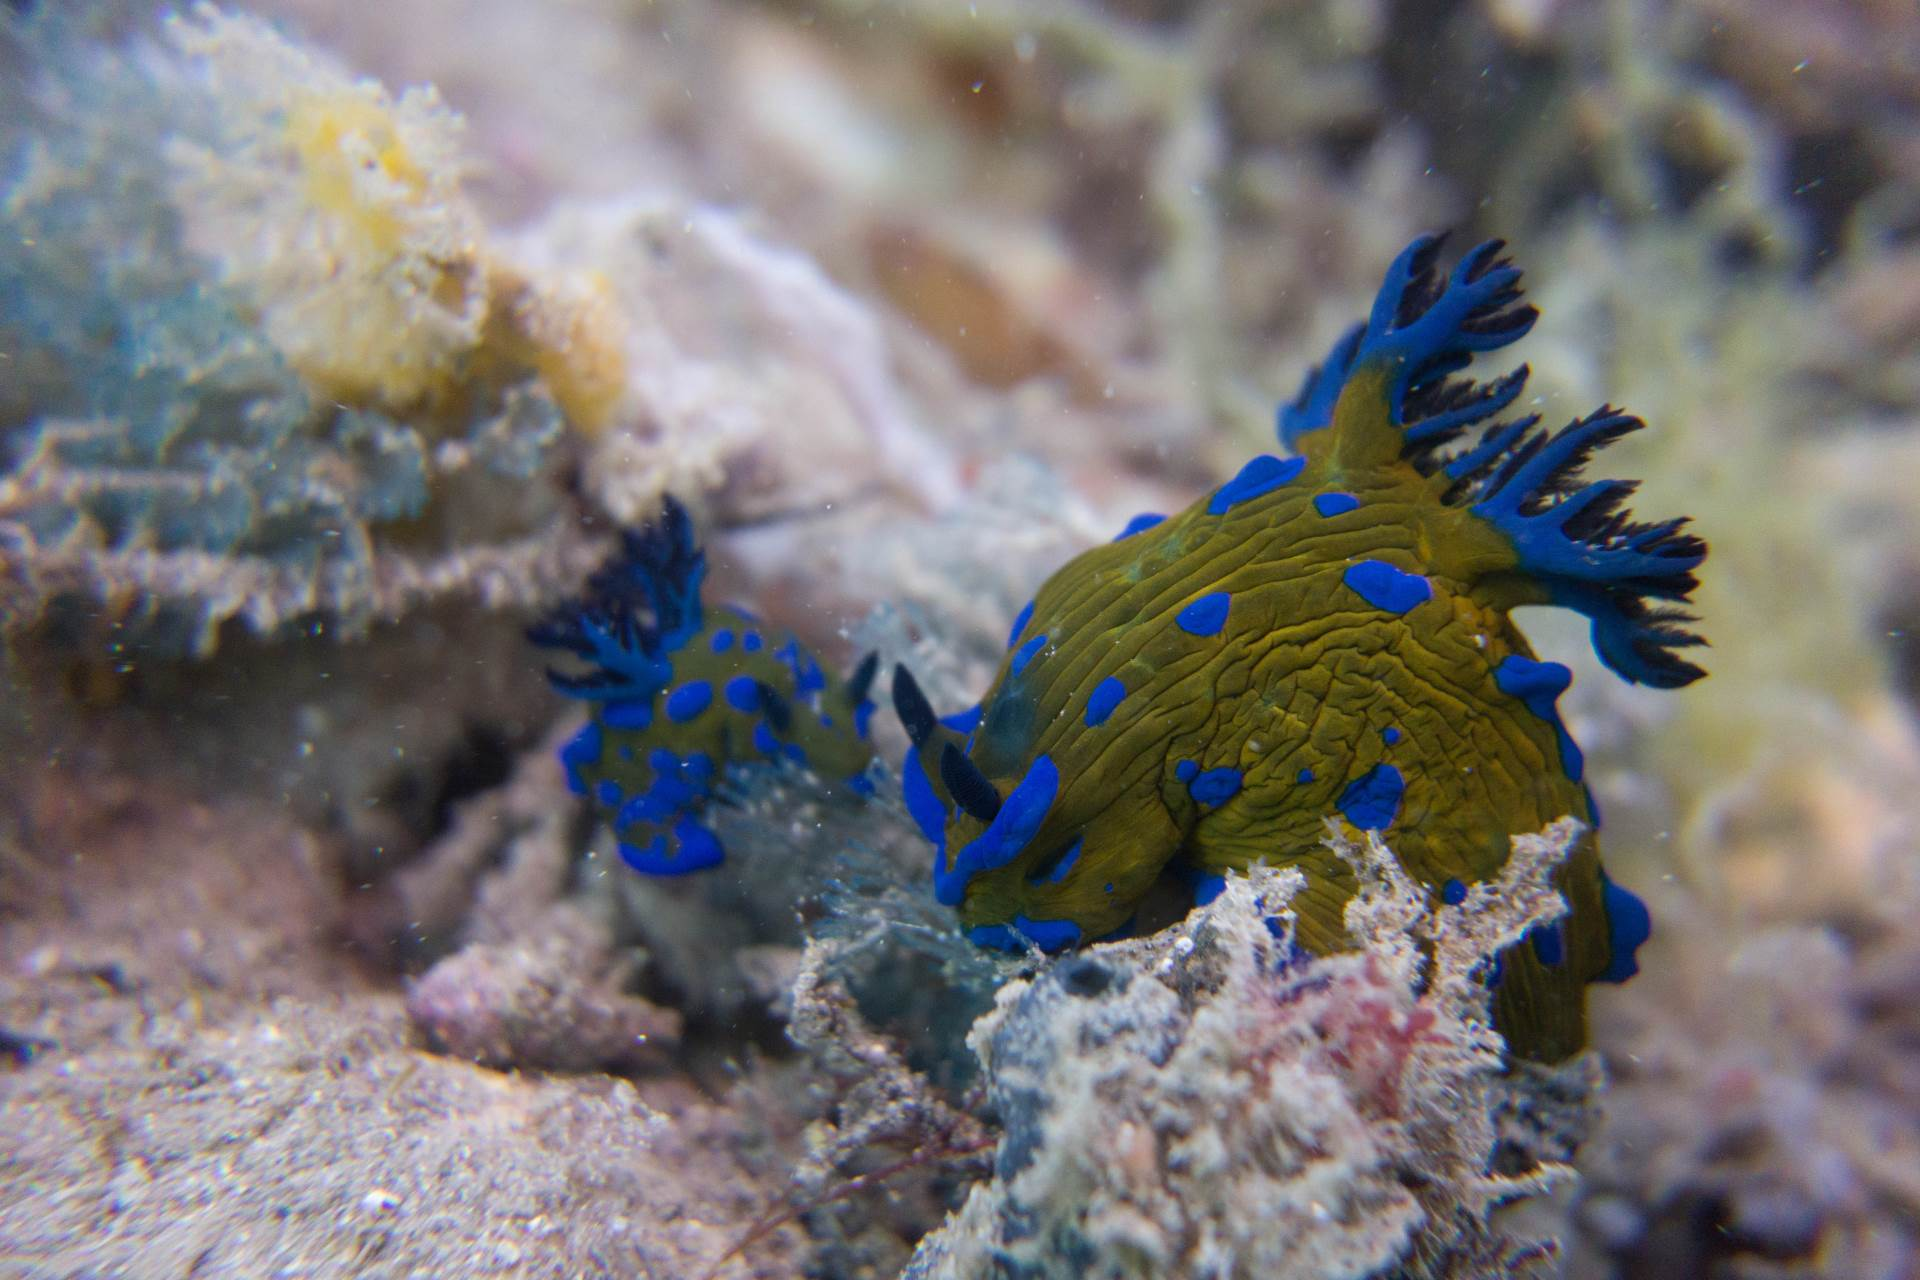 Verco's nudibranch feeding on some bryozoans